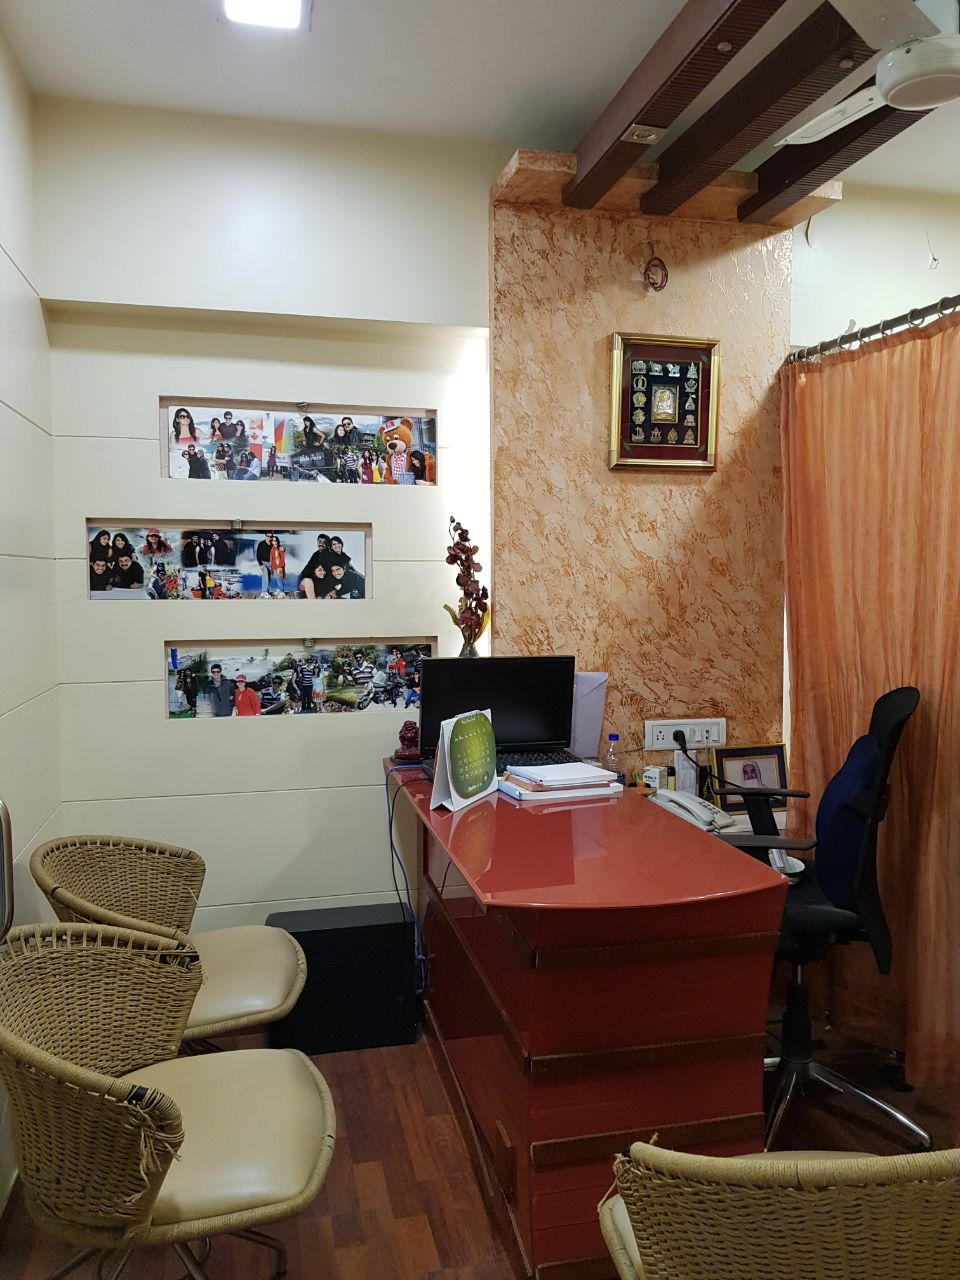 Mothercare Fertility Clinic - IVF Centre in Mumbai